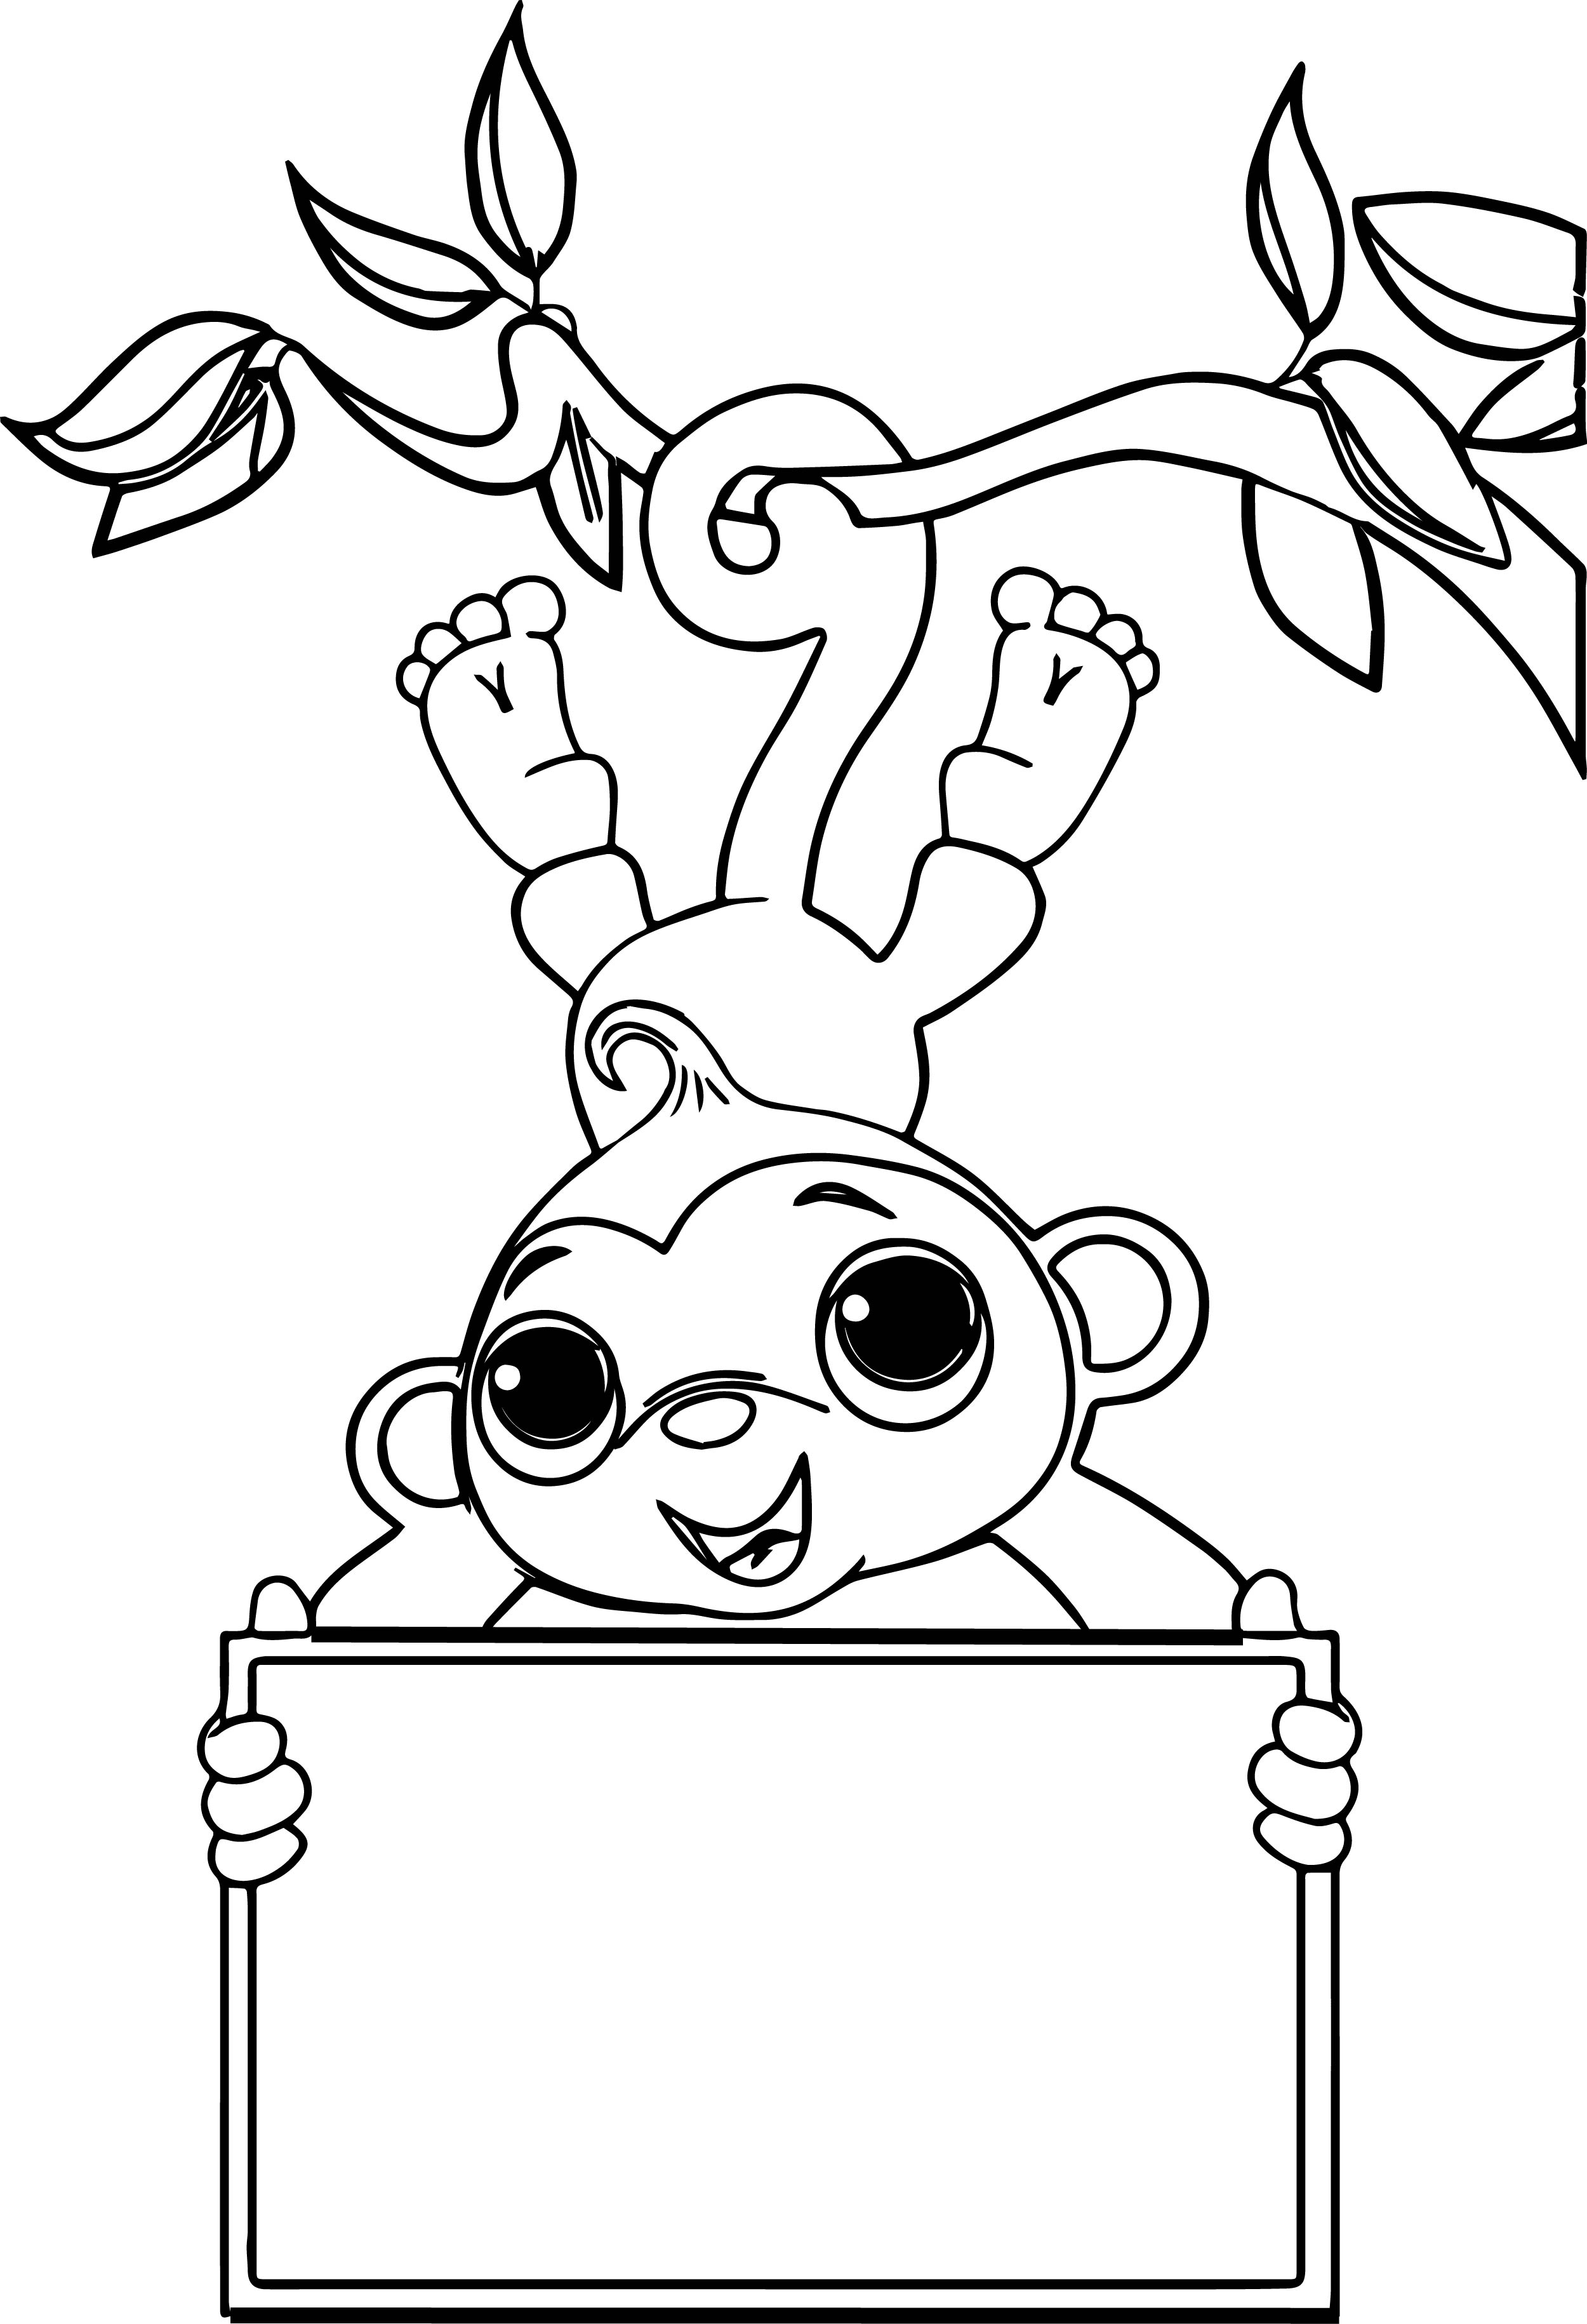 Sock Coloring Page At Getcolorings